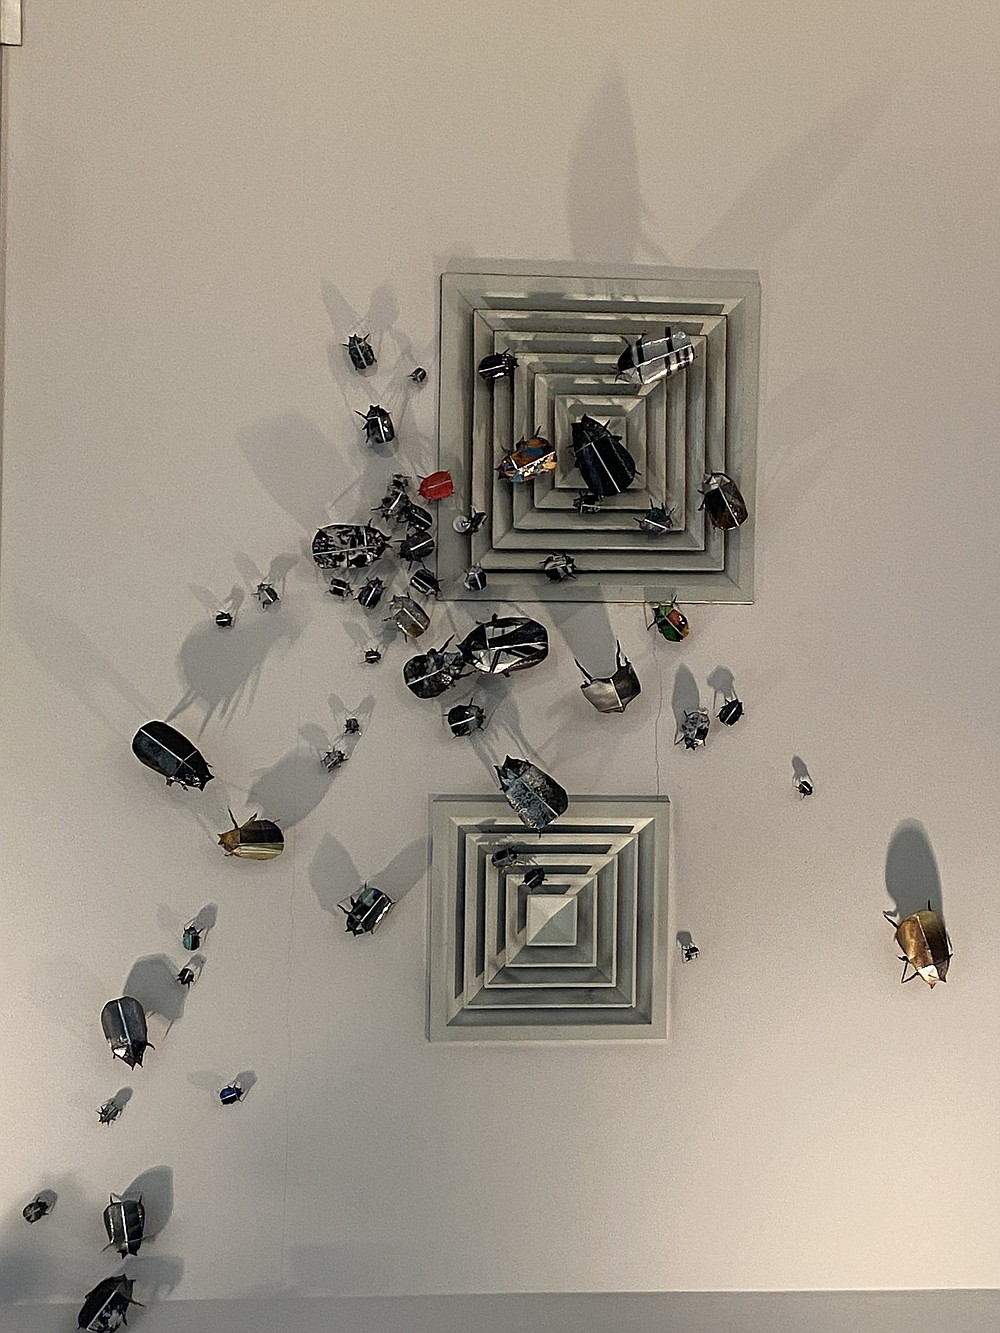 Scarabs appear to be on the ceiling at the Arts and Science Center for Southeast Arkansas. The image is part of the installation by artist Joli Livaudais. (Special to The Commercial)